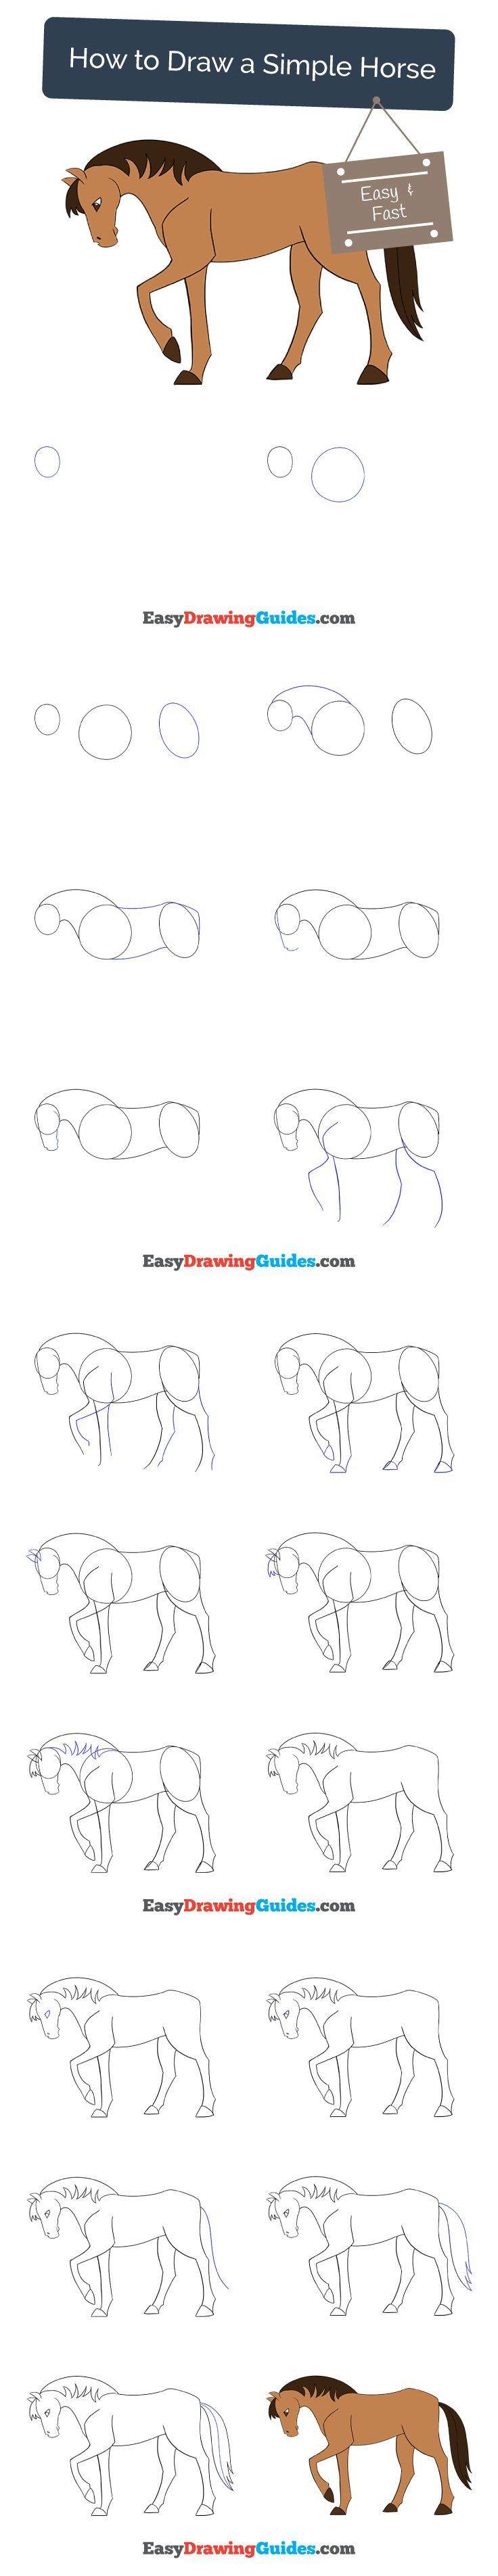 Learn How to Draw a Simple Horse: Easy Step-by-Step ...